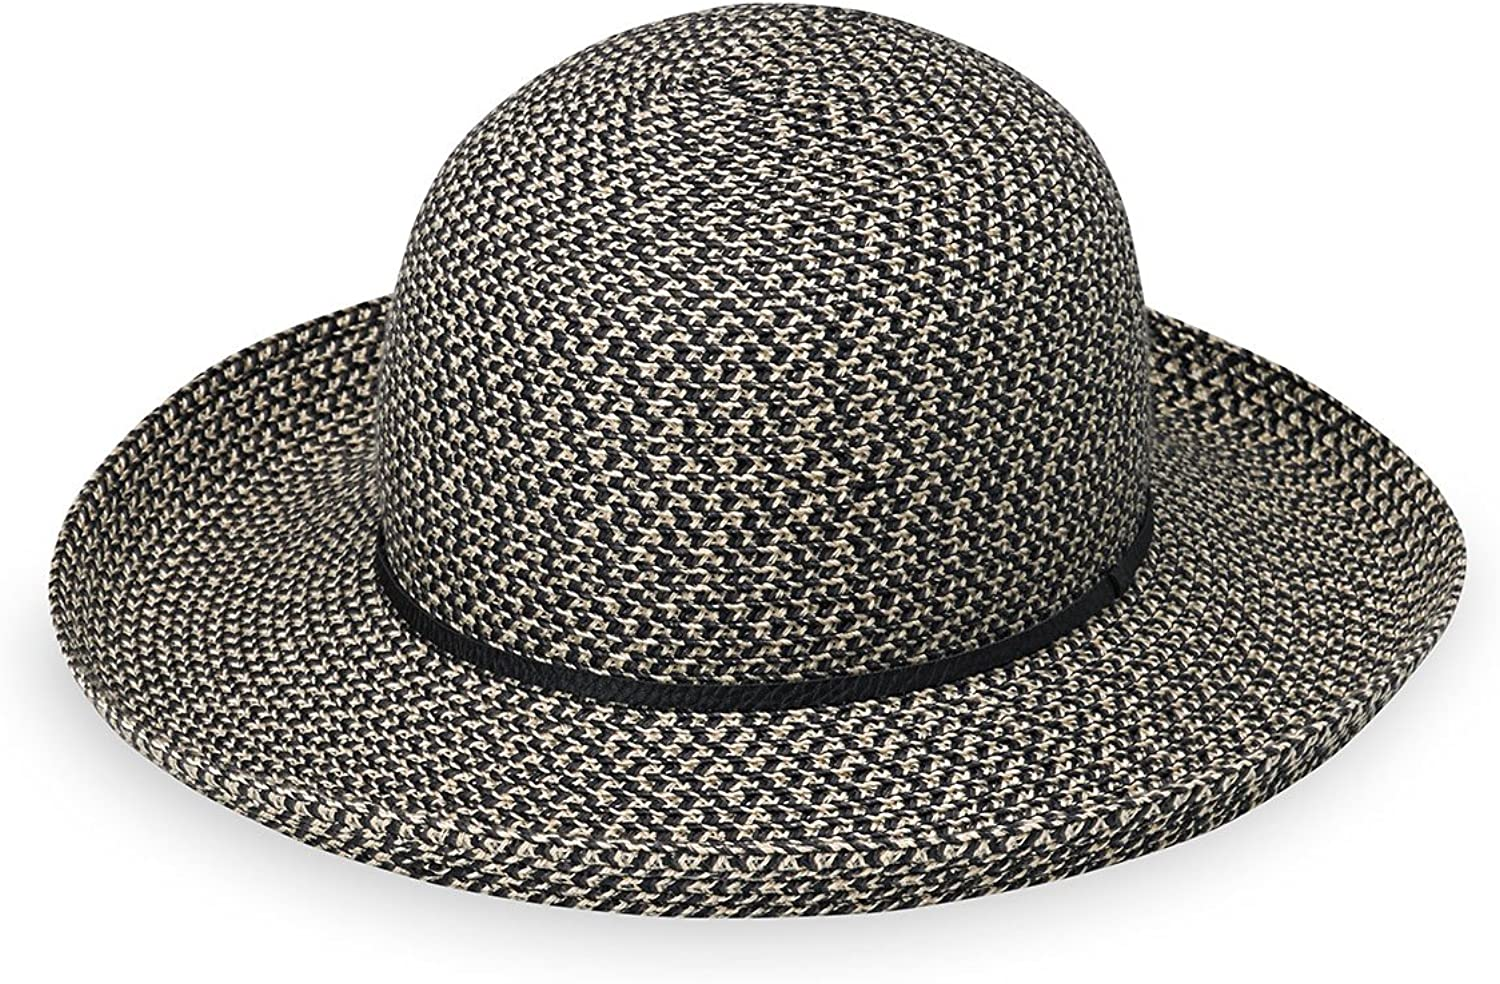 Wallaroo Hat Company Women's Amelia Sun Hat  UPF 50+, Lightweight, Packable, Modern Style, Designed in Australia